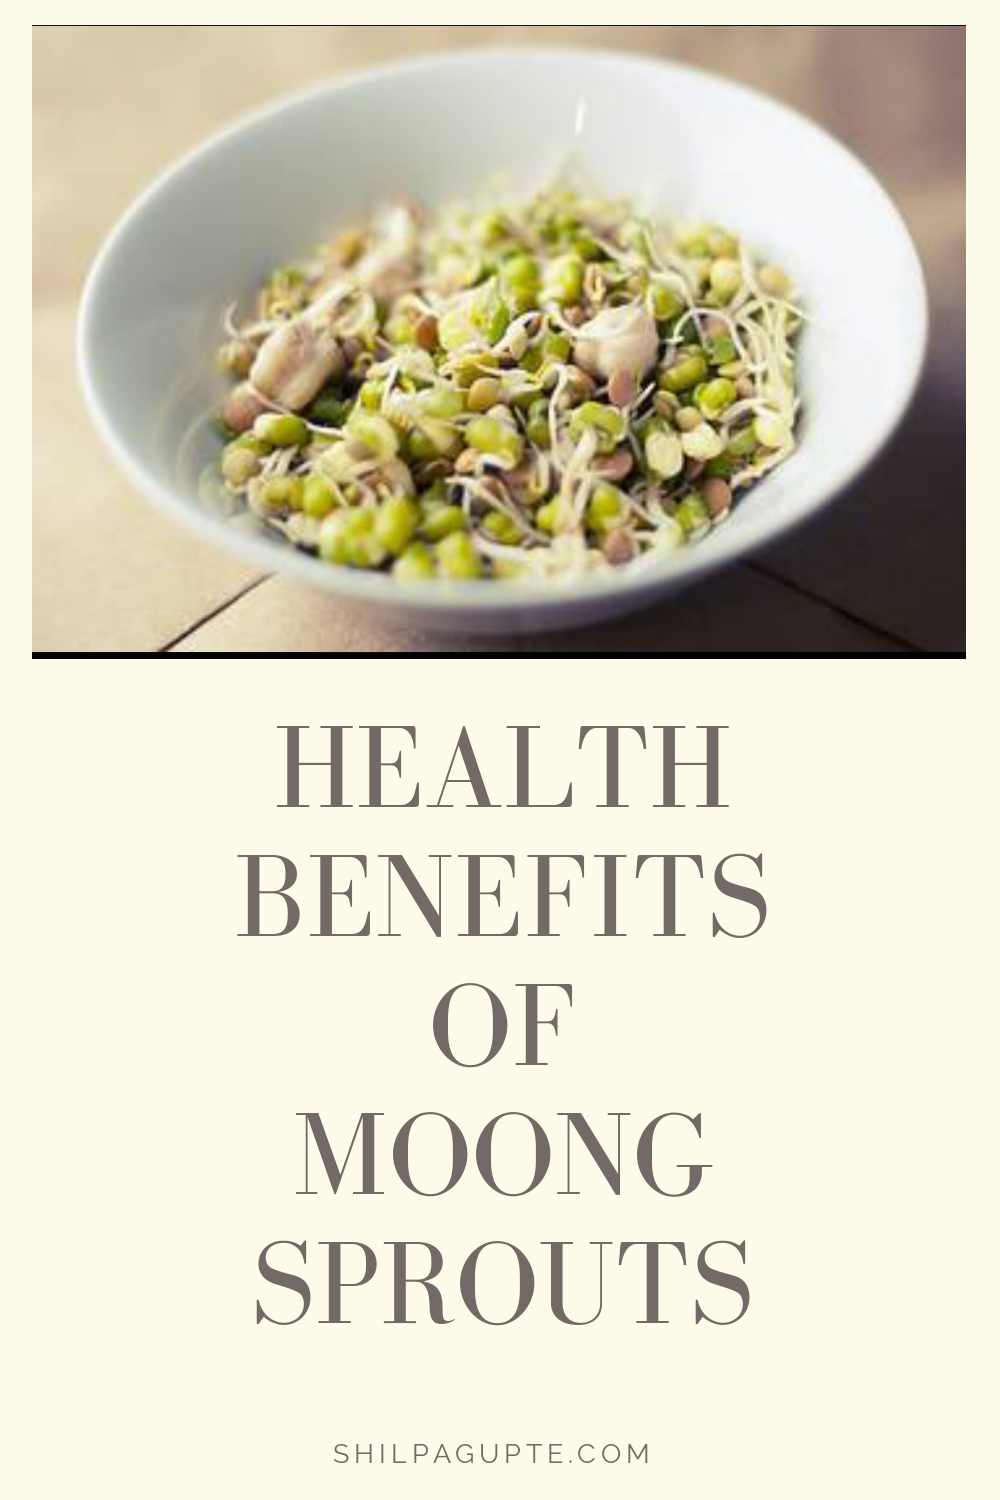 Benefits of eating sprouted moong